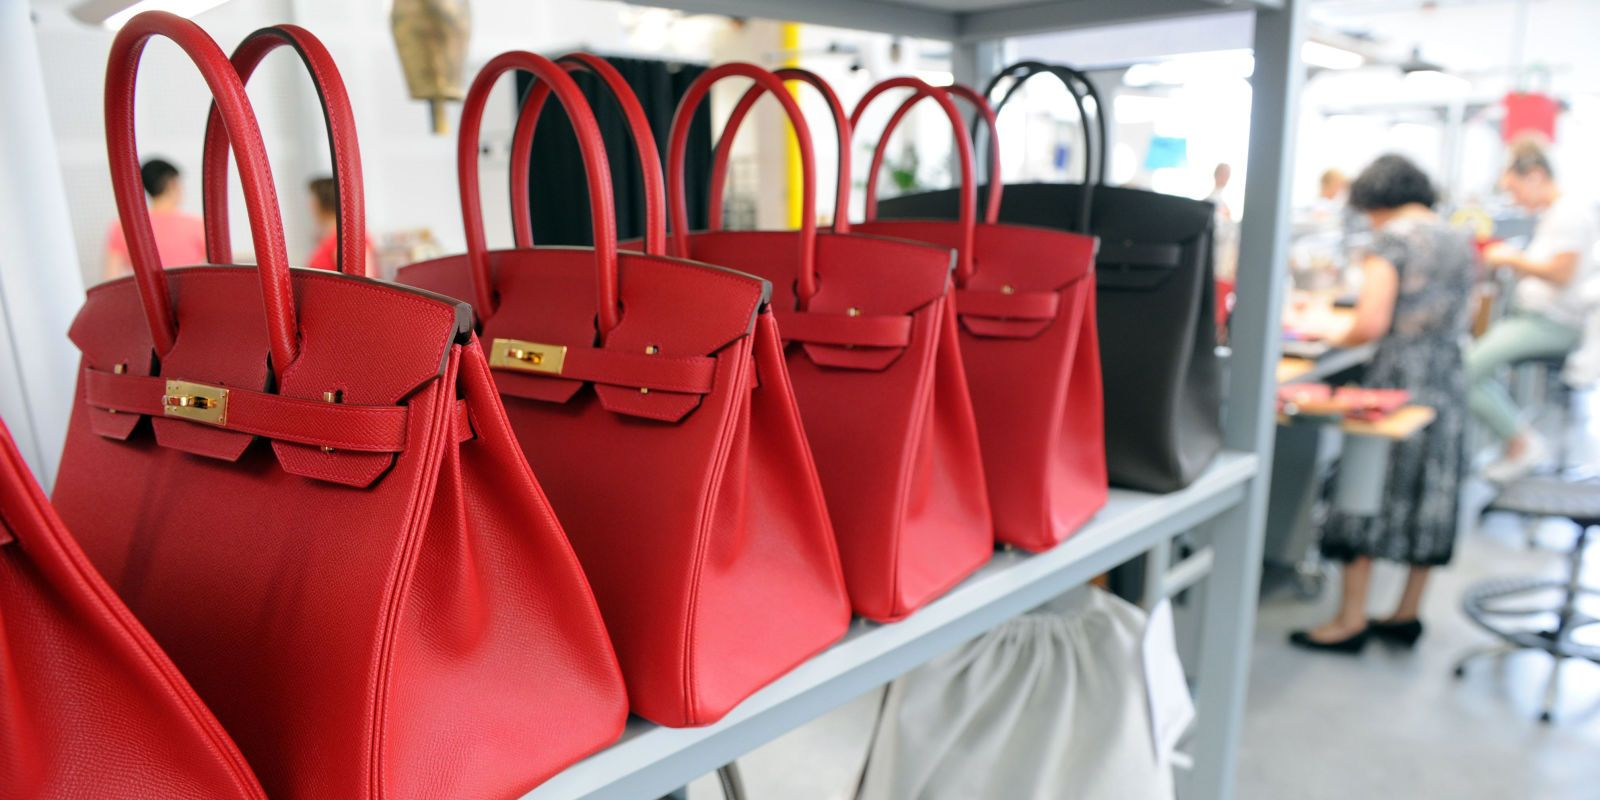 3c4afe07662d A Birkin Bag Might Be a Better Investment Than the Stock Market. Lifestyle  NewsLuxury ...